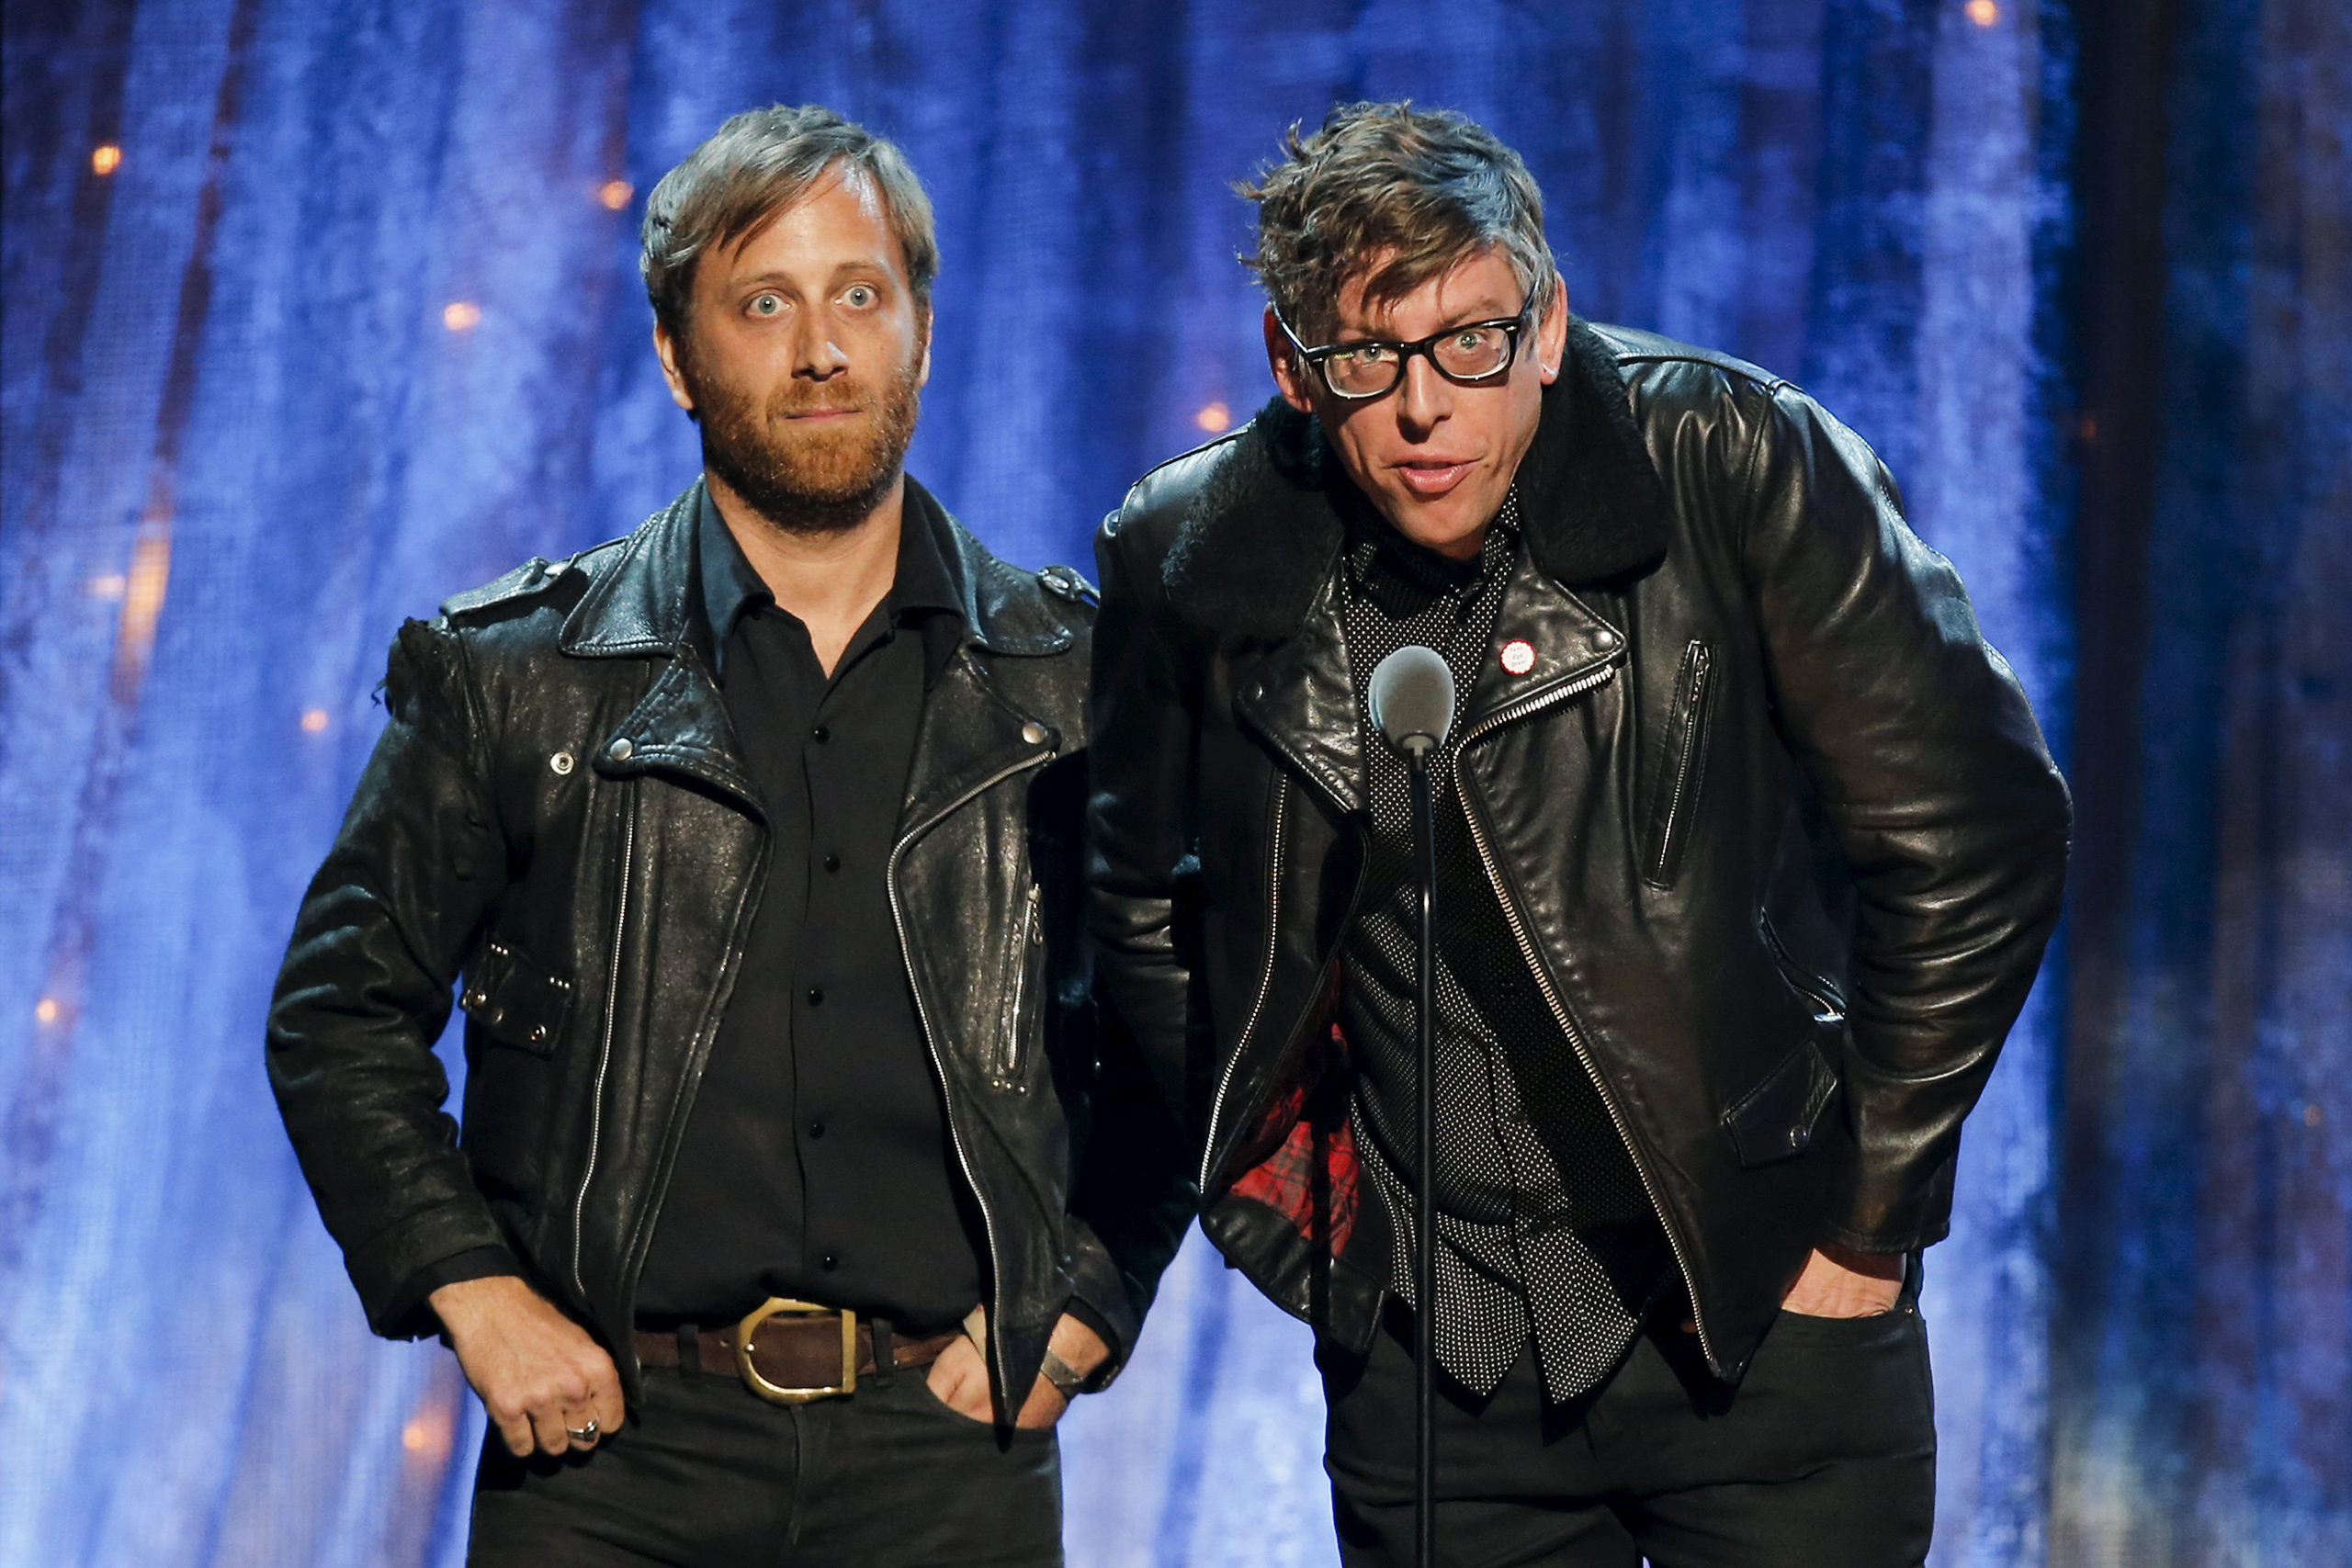 Dan Aurerbach, left, and Patrick Carney of The Black Keys induct Steve Miller onstage at the 31st Annual Rock And Roll Hall Of Fame Induction Ceremony at the Barclays Center in Brooklyn, April 8, 2016.